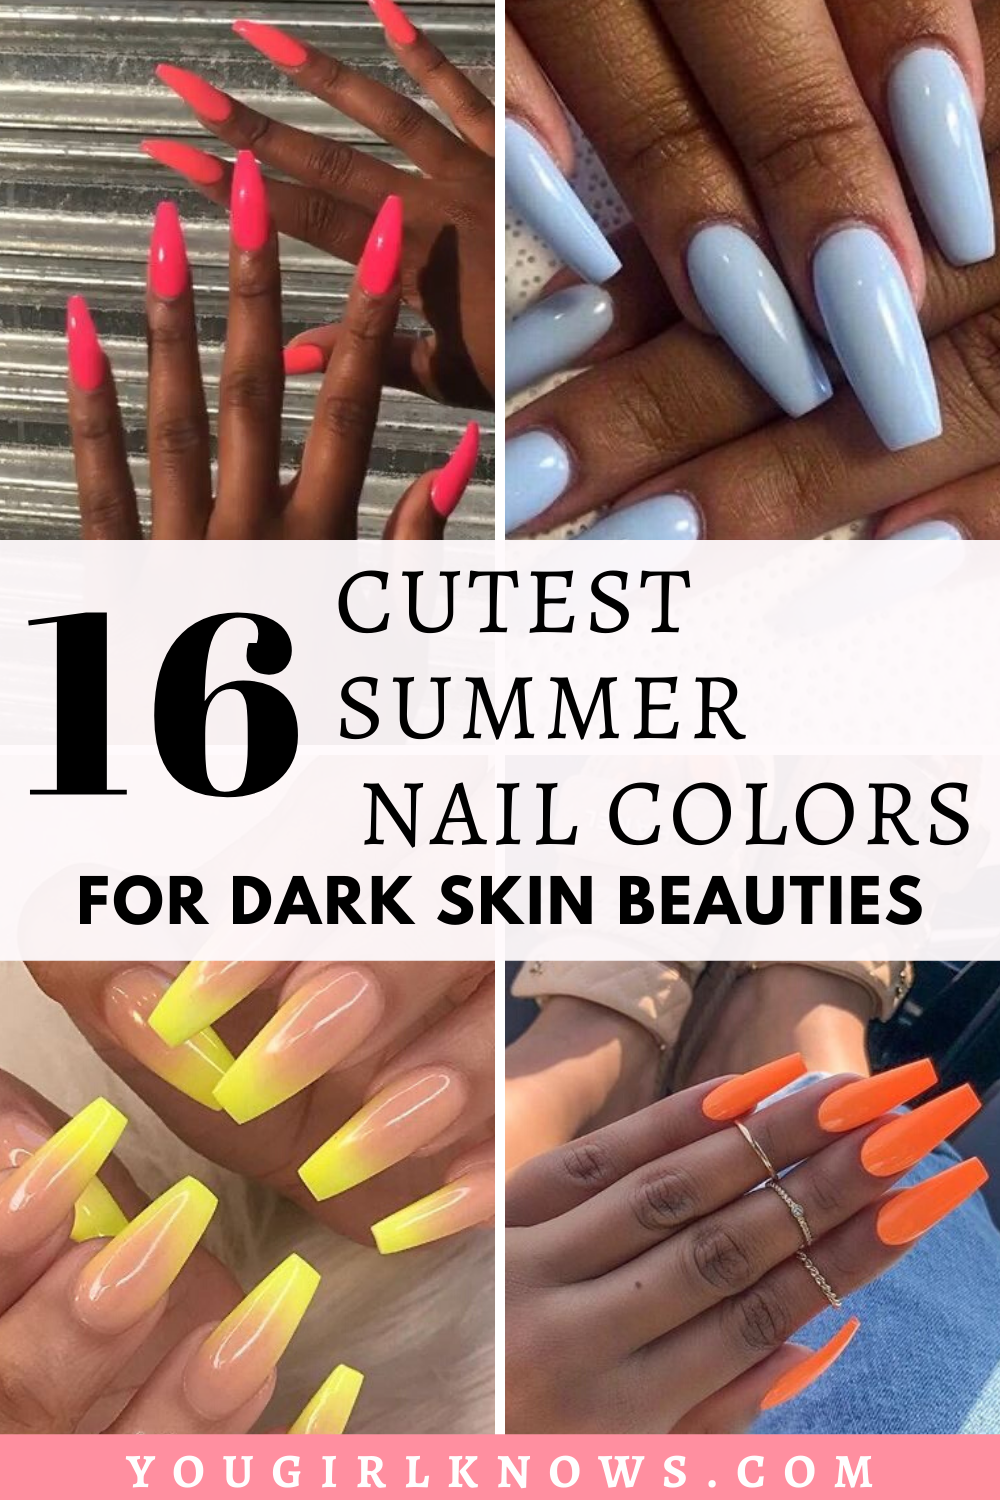 Summer Nail Colors For Brown Skin : summer, colors, brown, SUMMER, COLORS, BLACK, WOMEN, Colors,, Colors